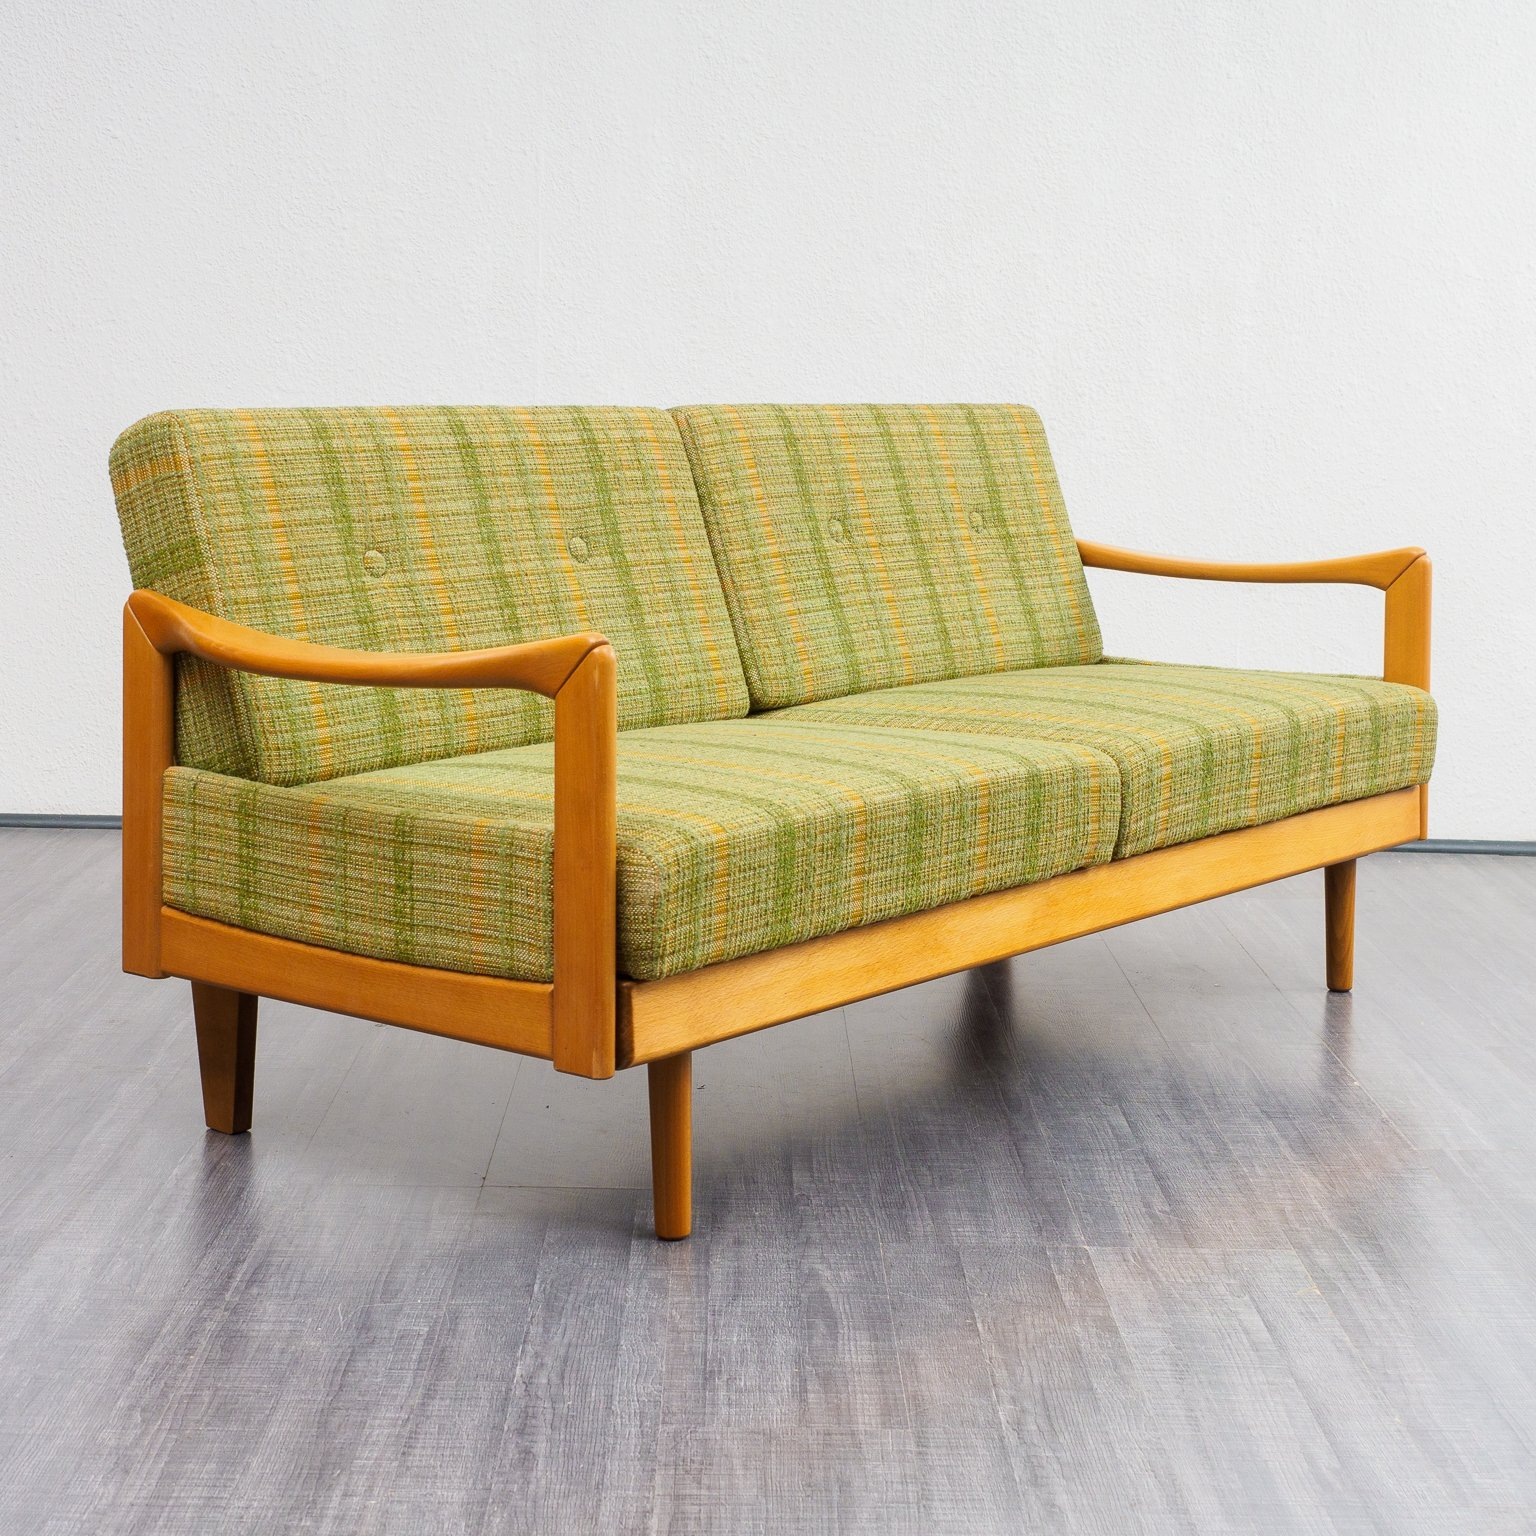 Pleasing Extendable Sofa Daybed In Solid Wood 1960S Uwap Interior Chair Design Uwaporg